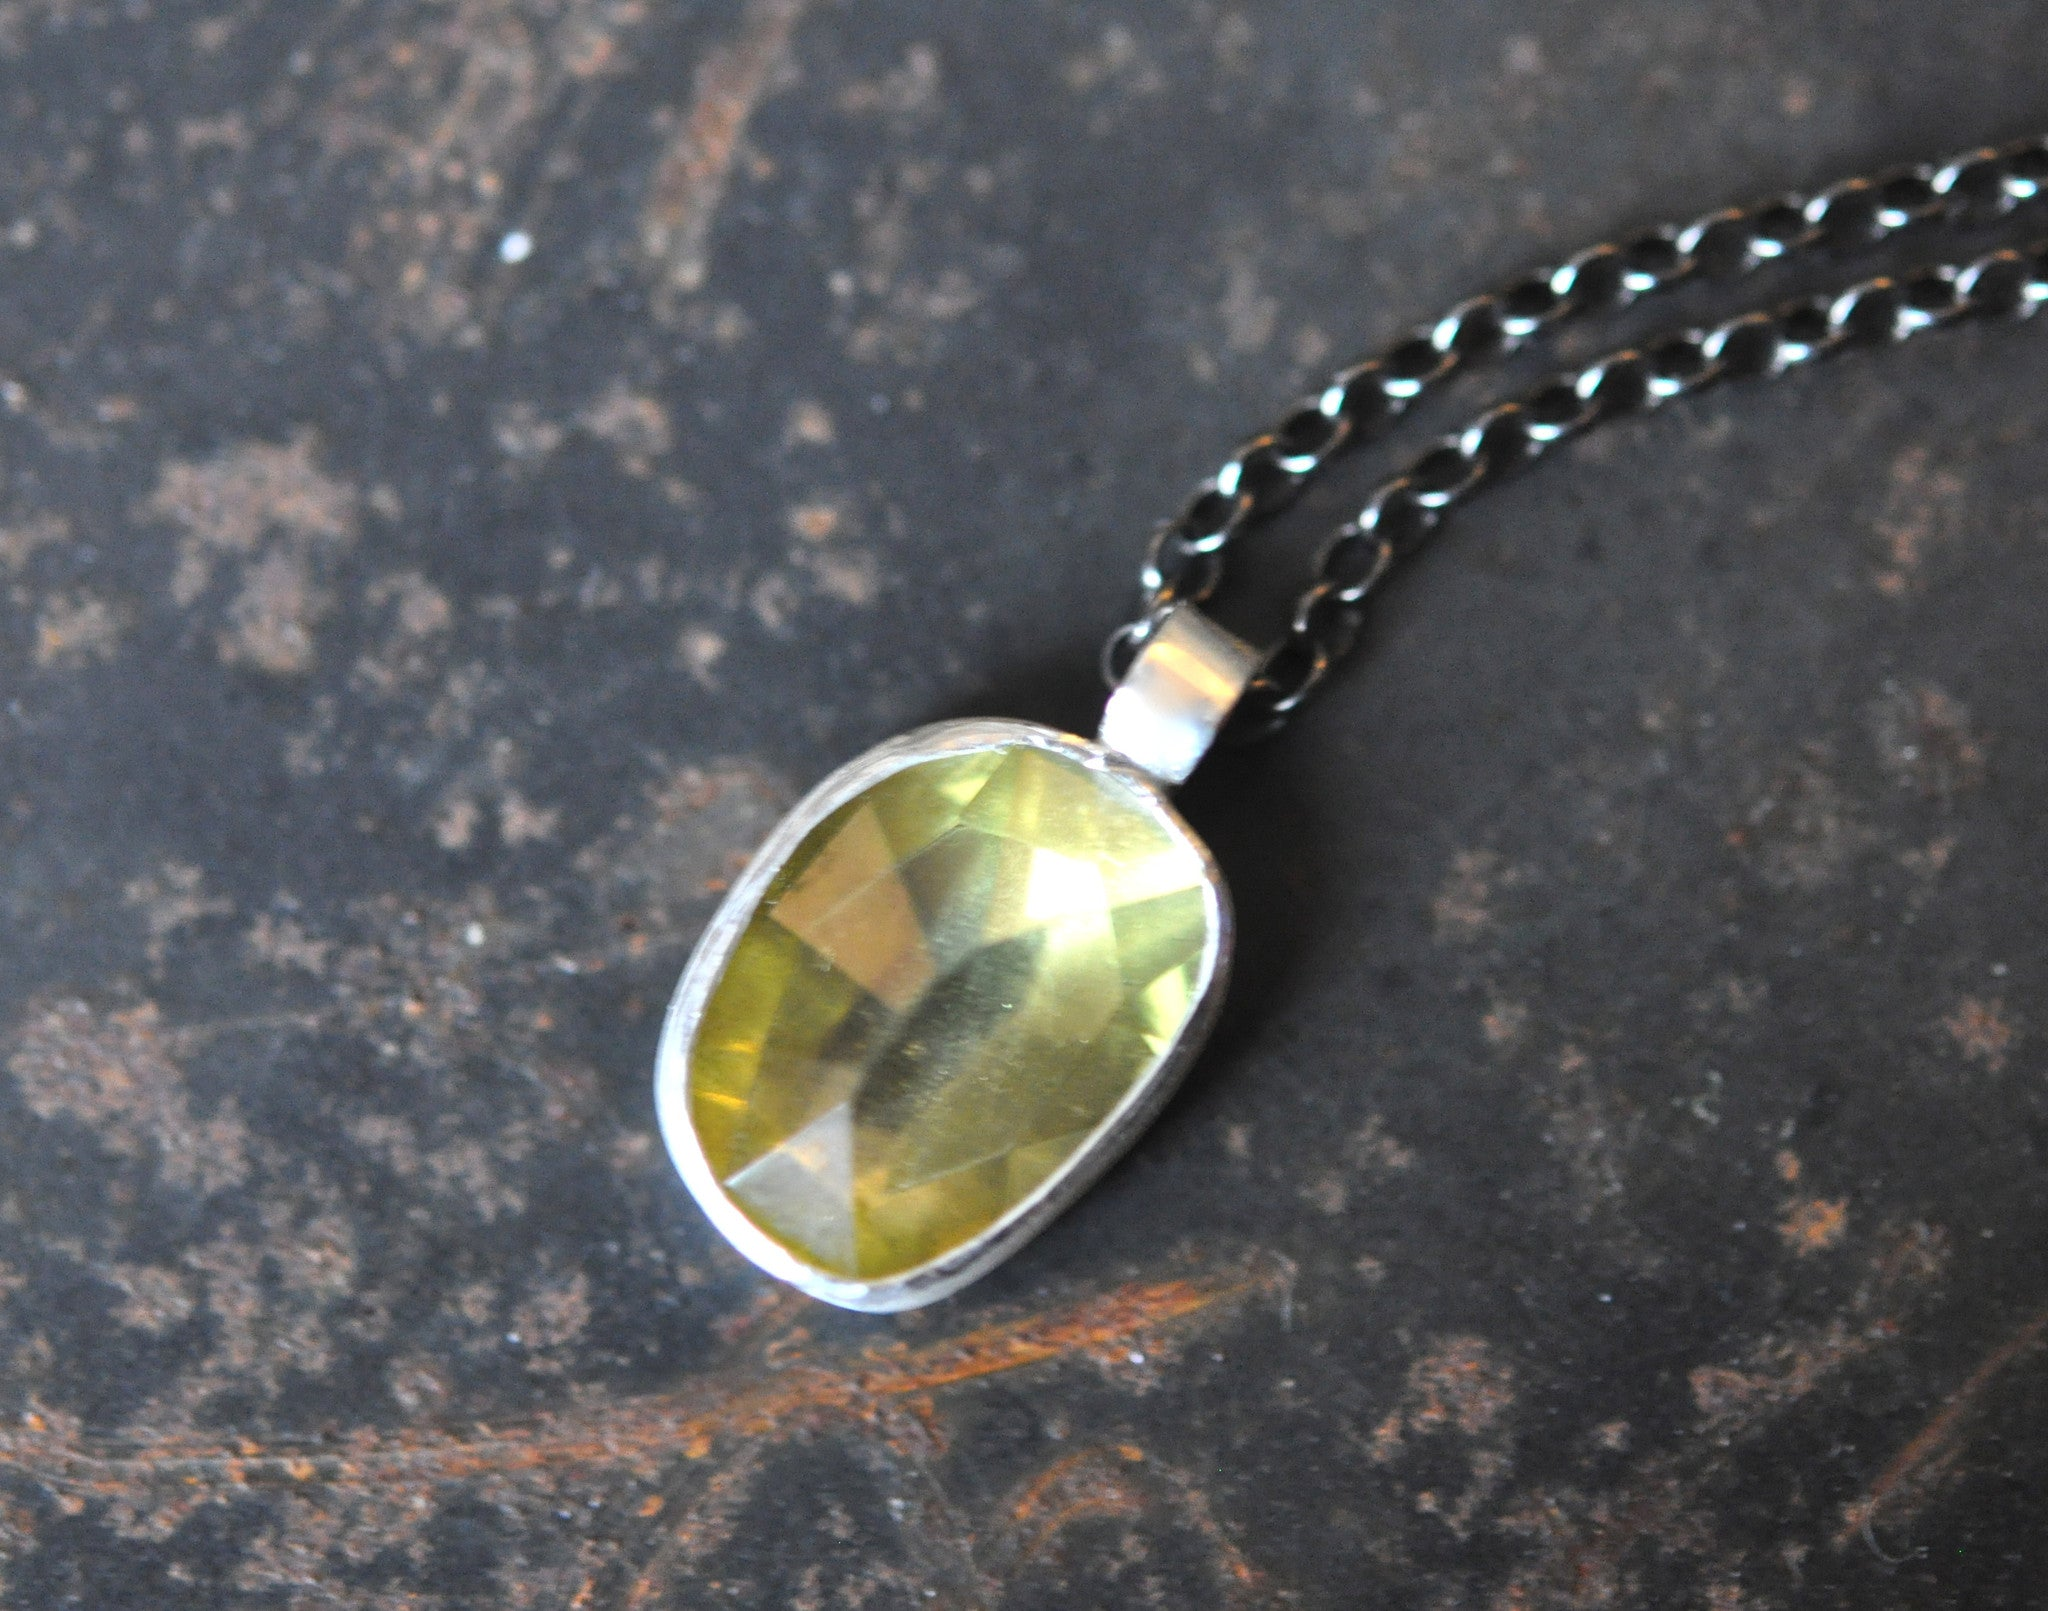 workshop / intro to working with metals + bezel setting gemstones